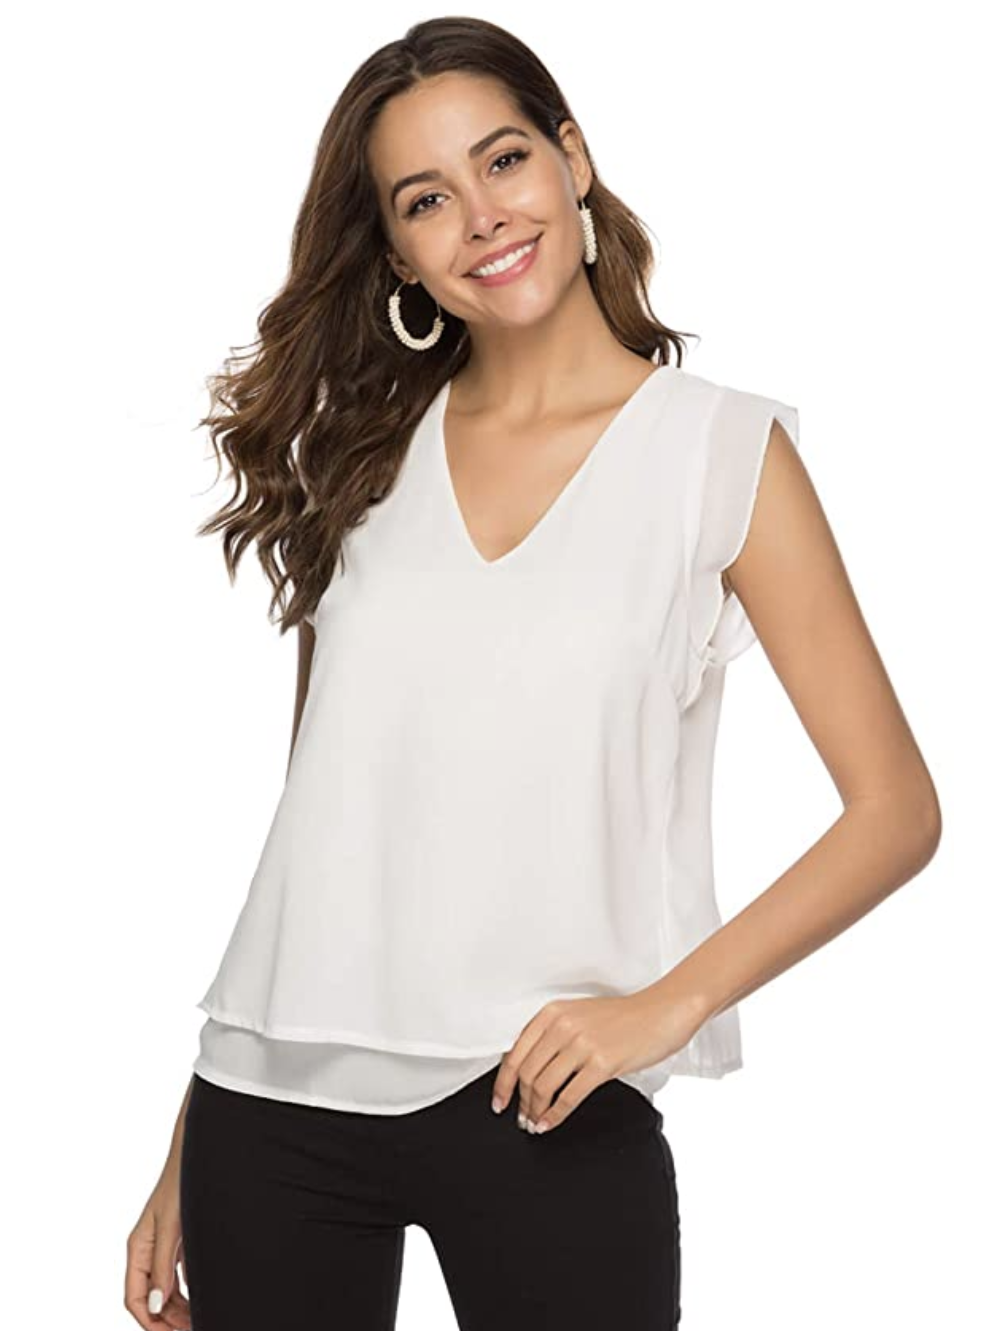 Women's White Blouse